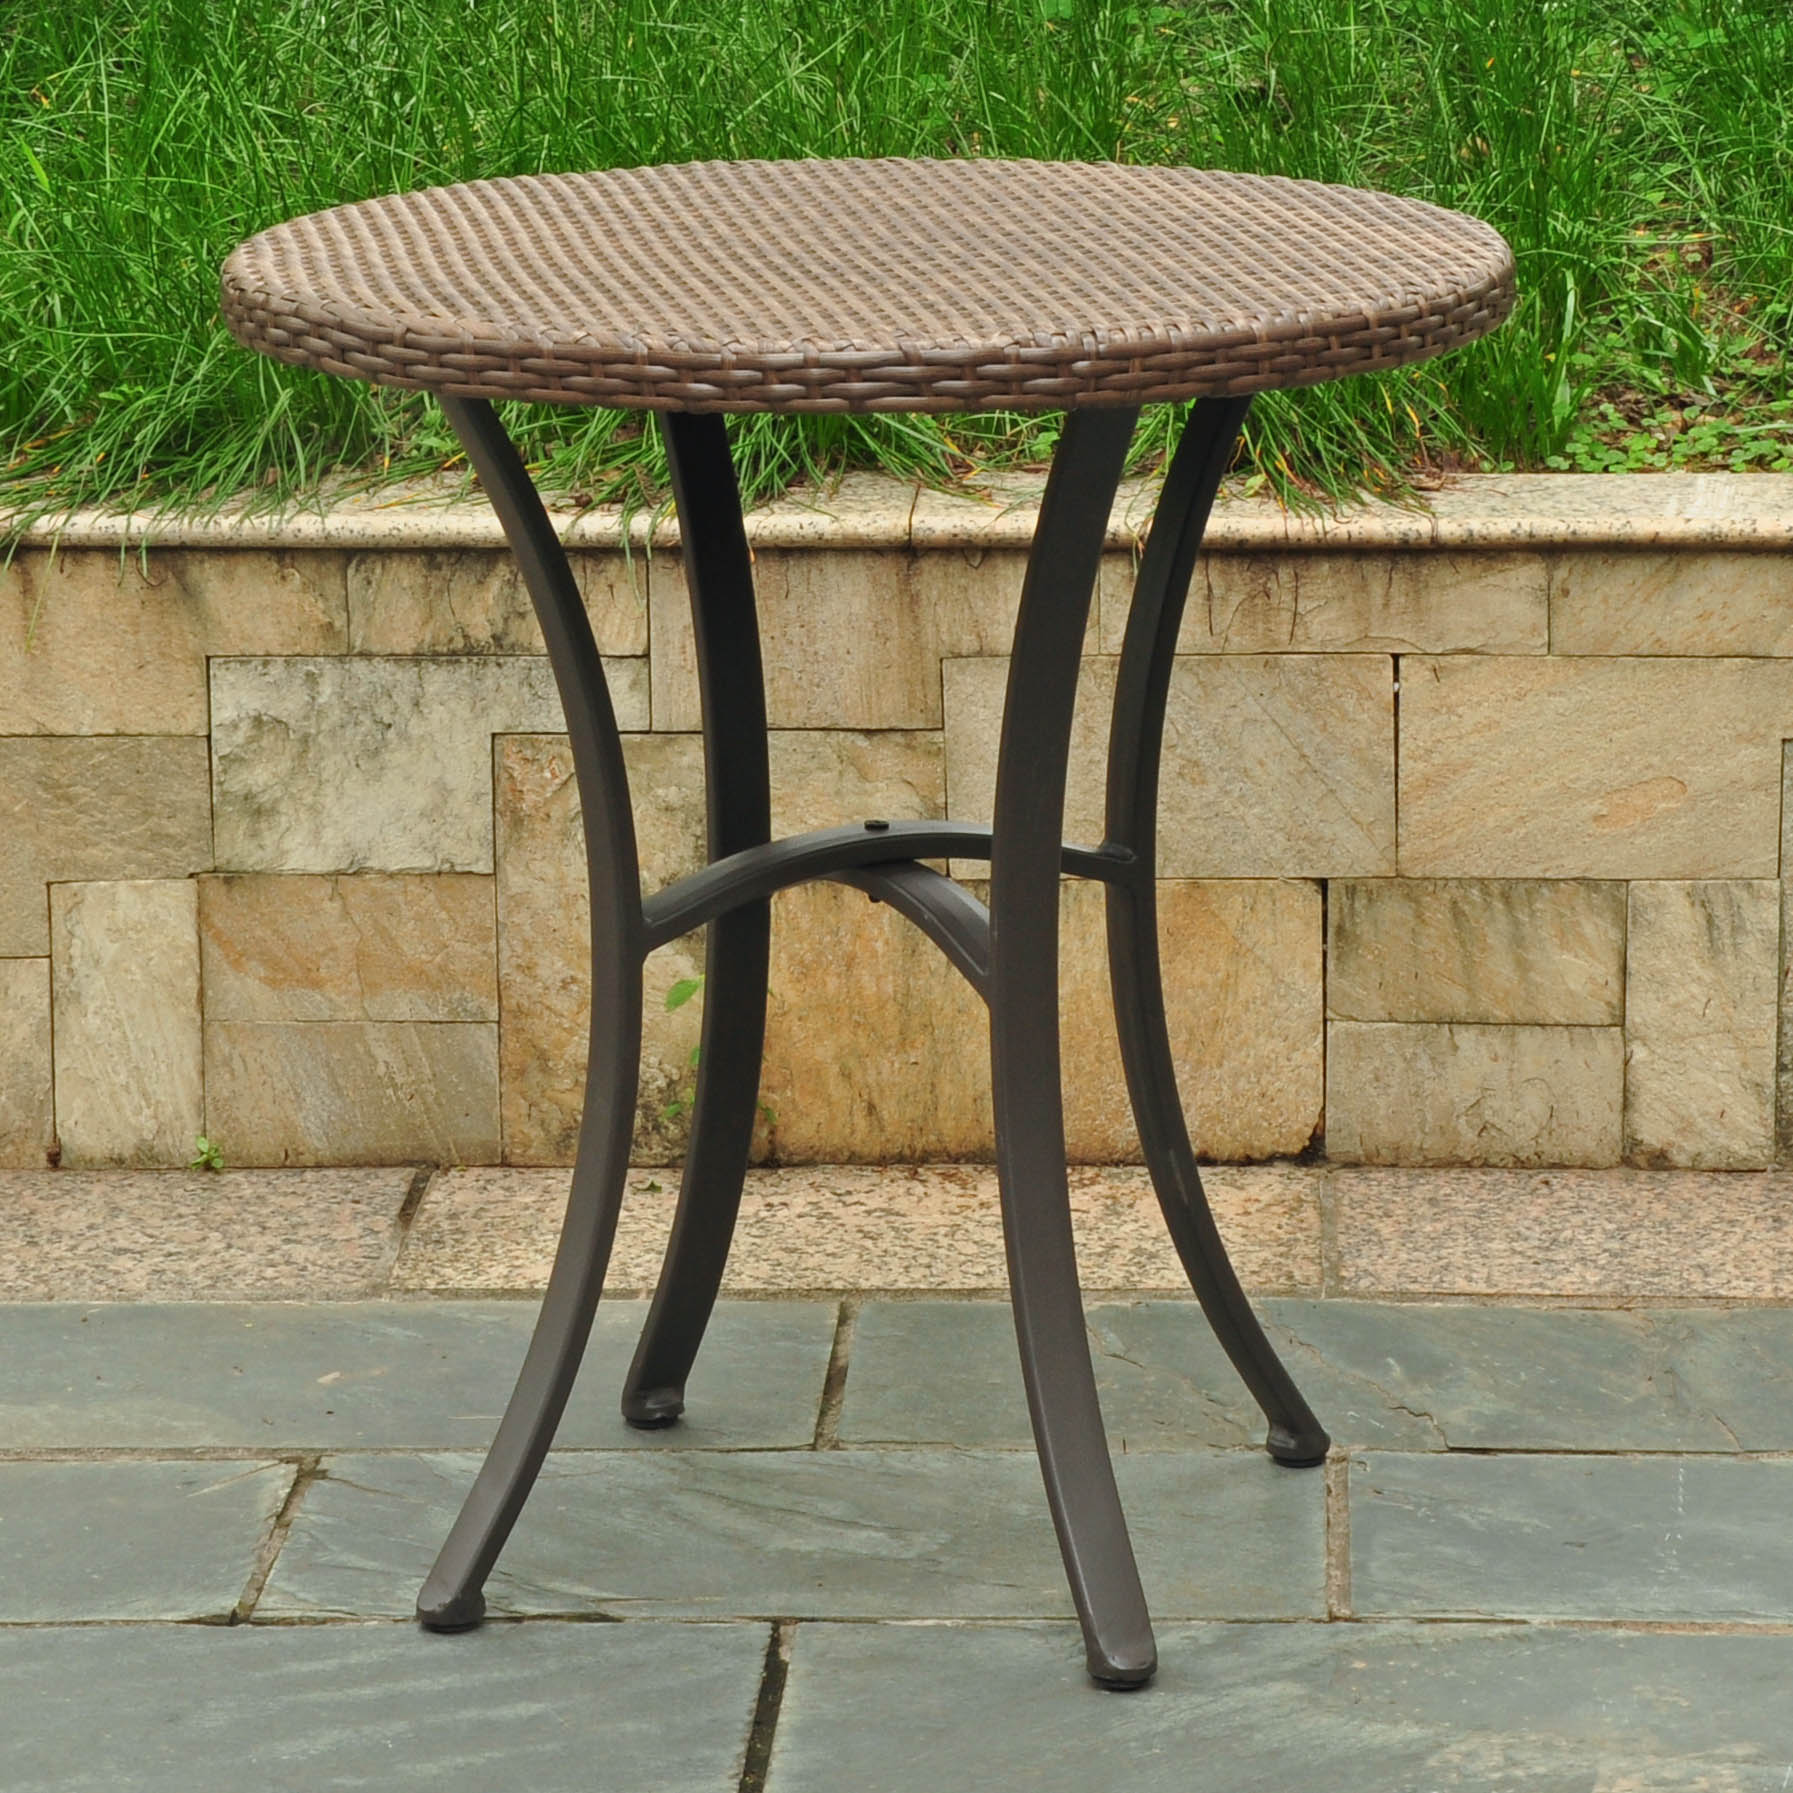 patio tables abn outdoor side table resin quick view centre for drawing room wooden wine racks kohls end armless living chairs victorian style coffee and drink cooler blue united